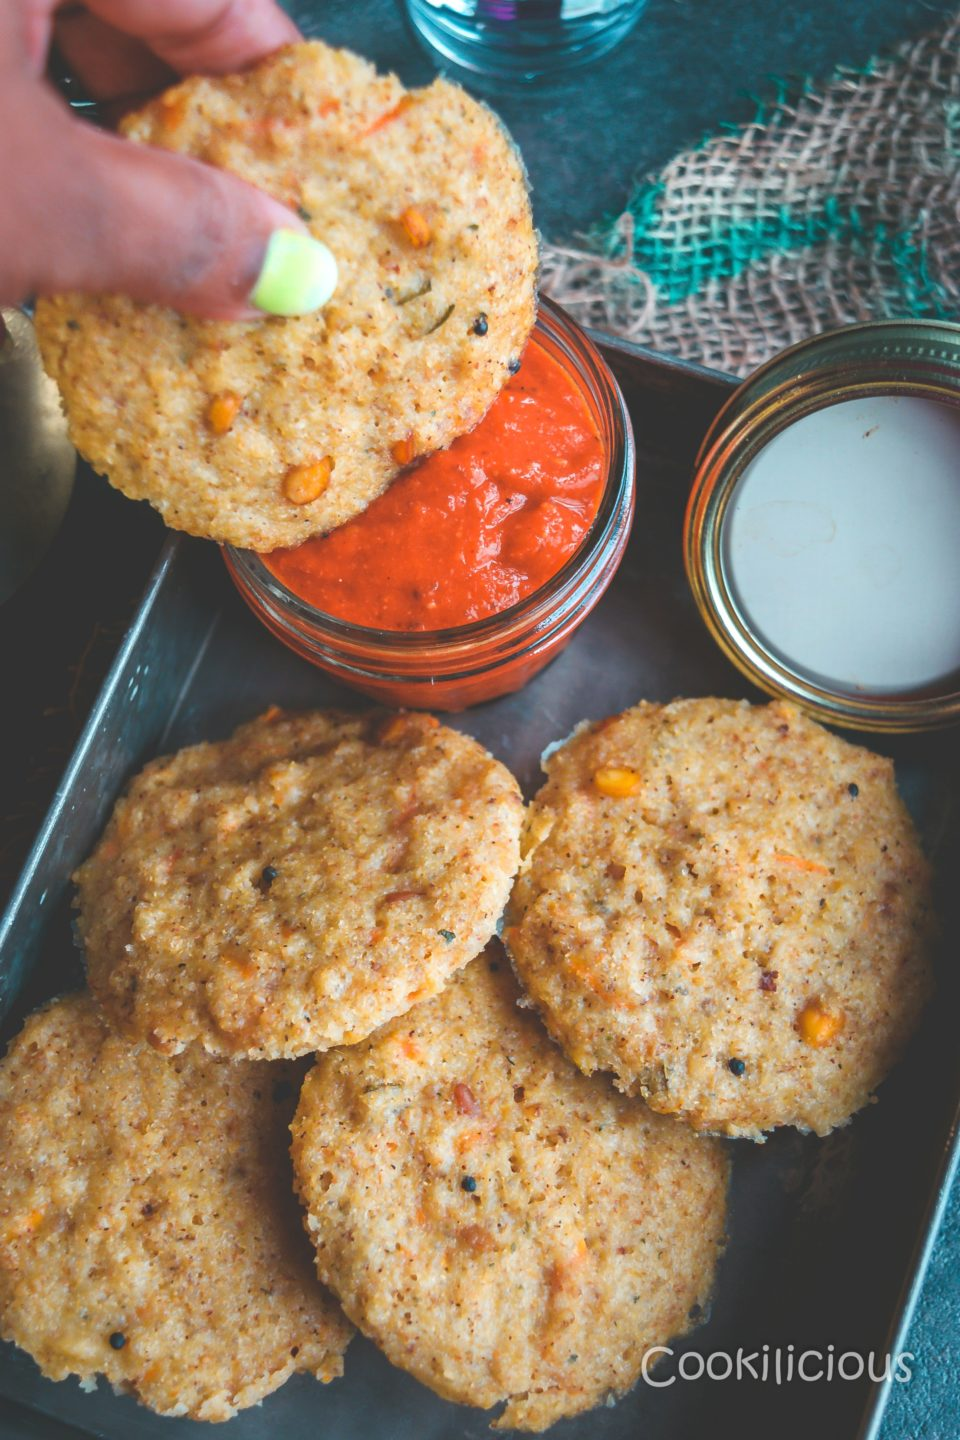 a tray filled with Instant Sweet Potato & Quinoa Idli/Steamed Cakes and one hand dipping an idli in the red chutney